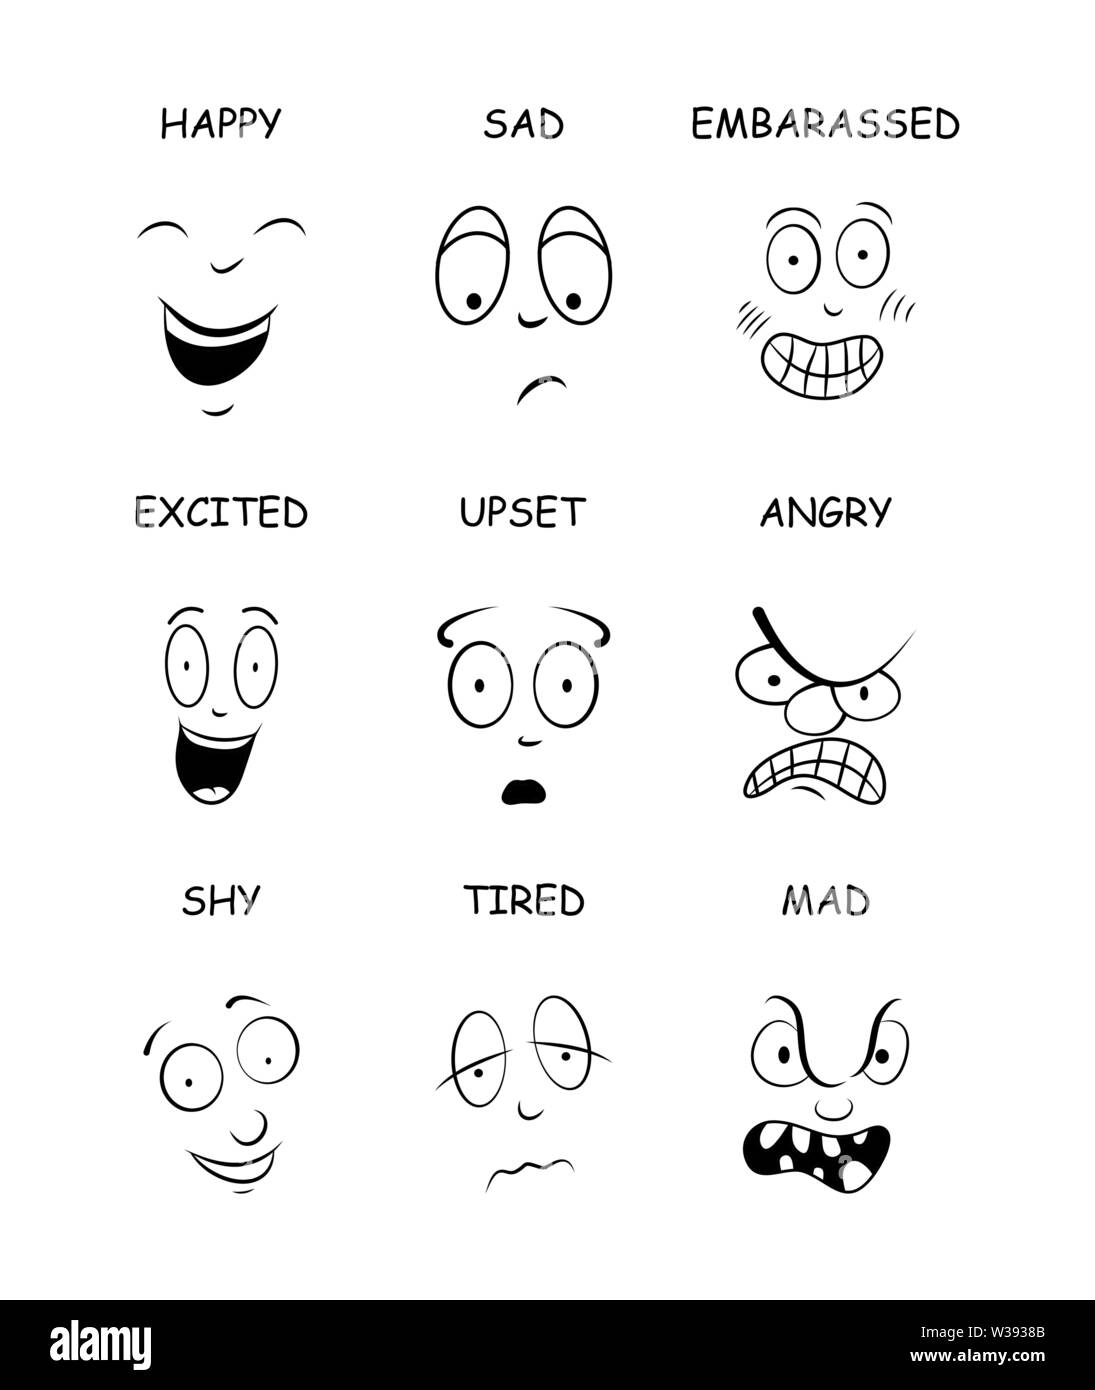 Expressions Cartoon High Resolution Stock Photography And Images Alamy